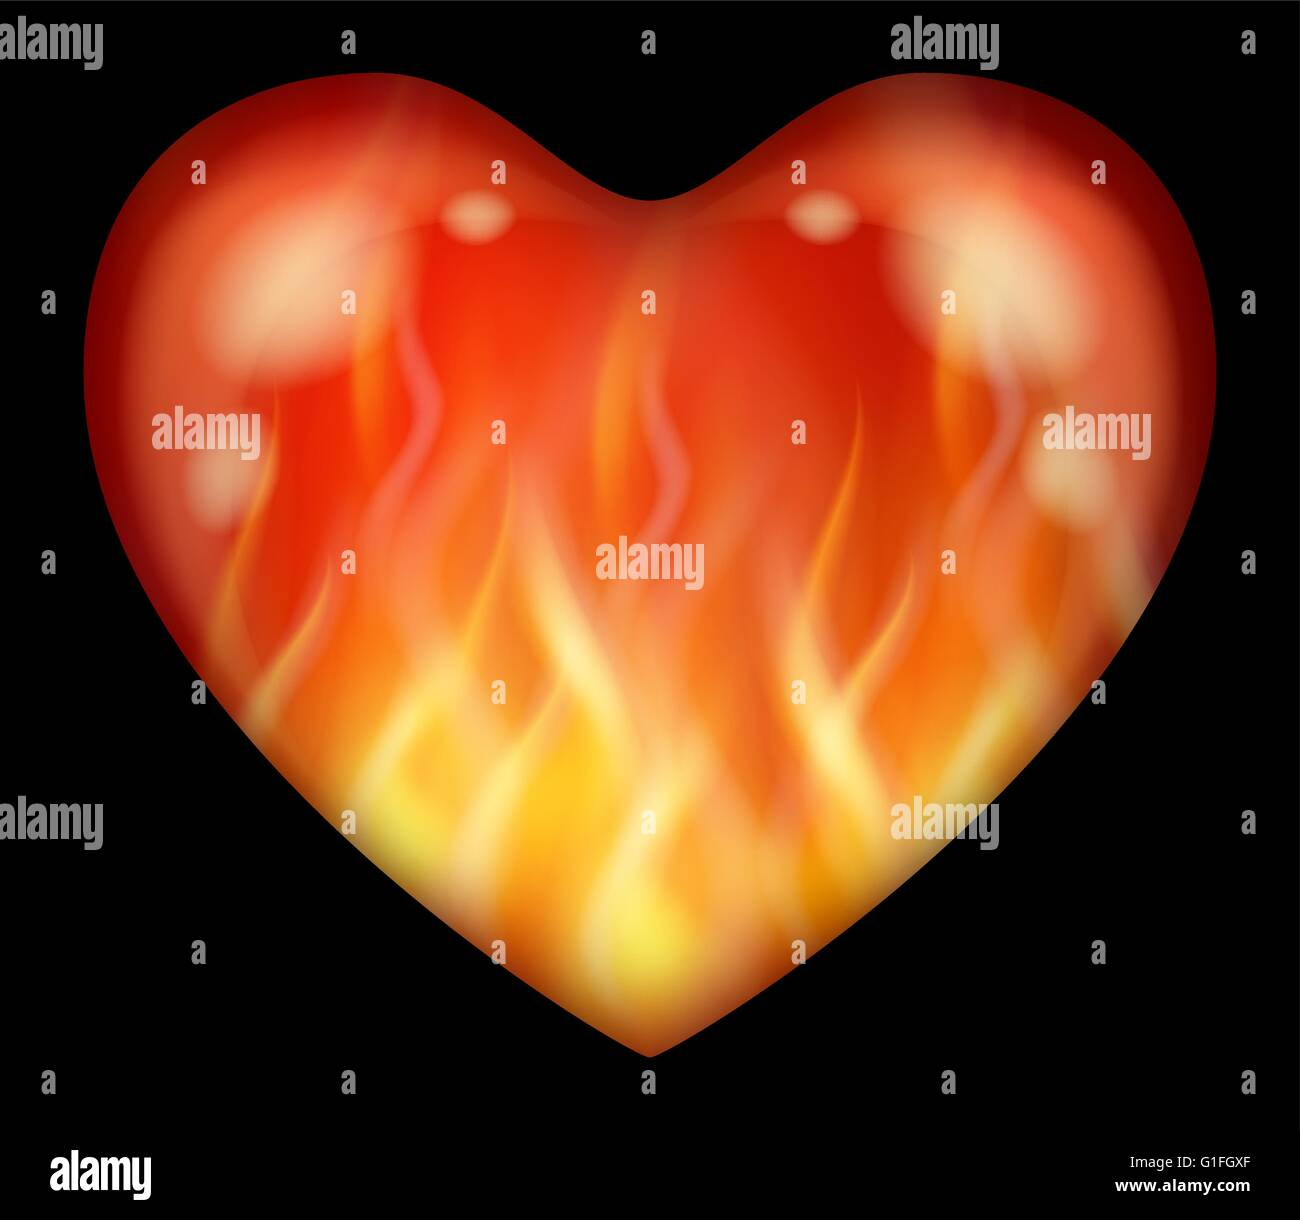 flaming heart stockfotos flaming heart bilder alamy. Black Bedroom Furniture Sets. Home Design Ideas